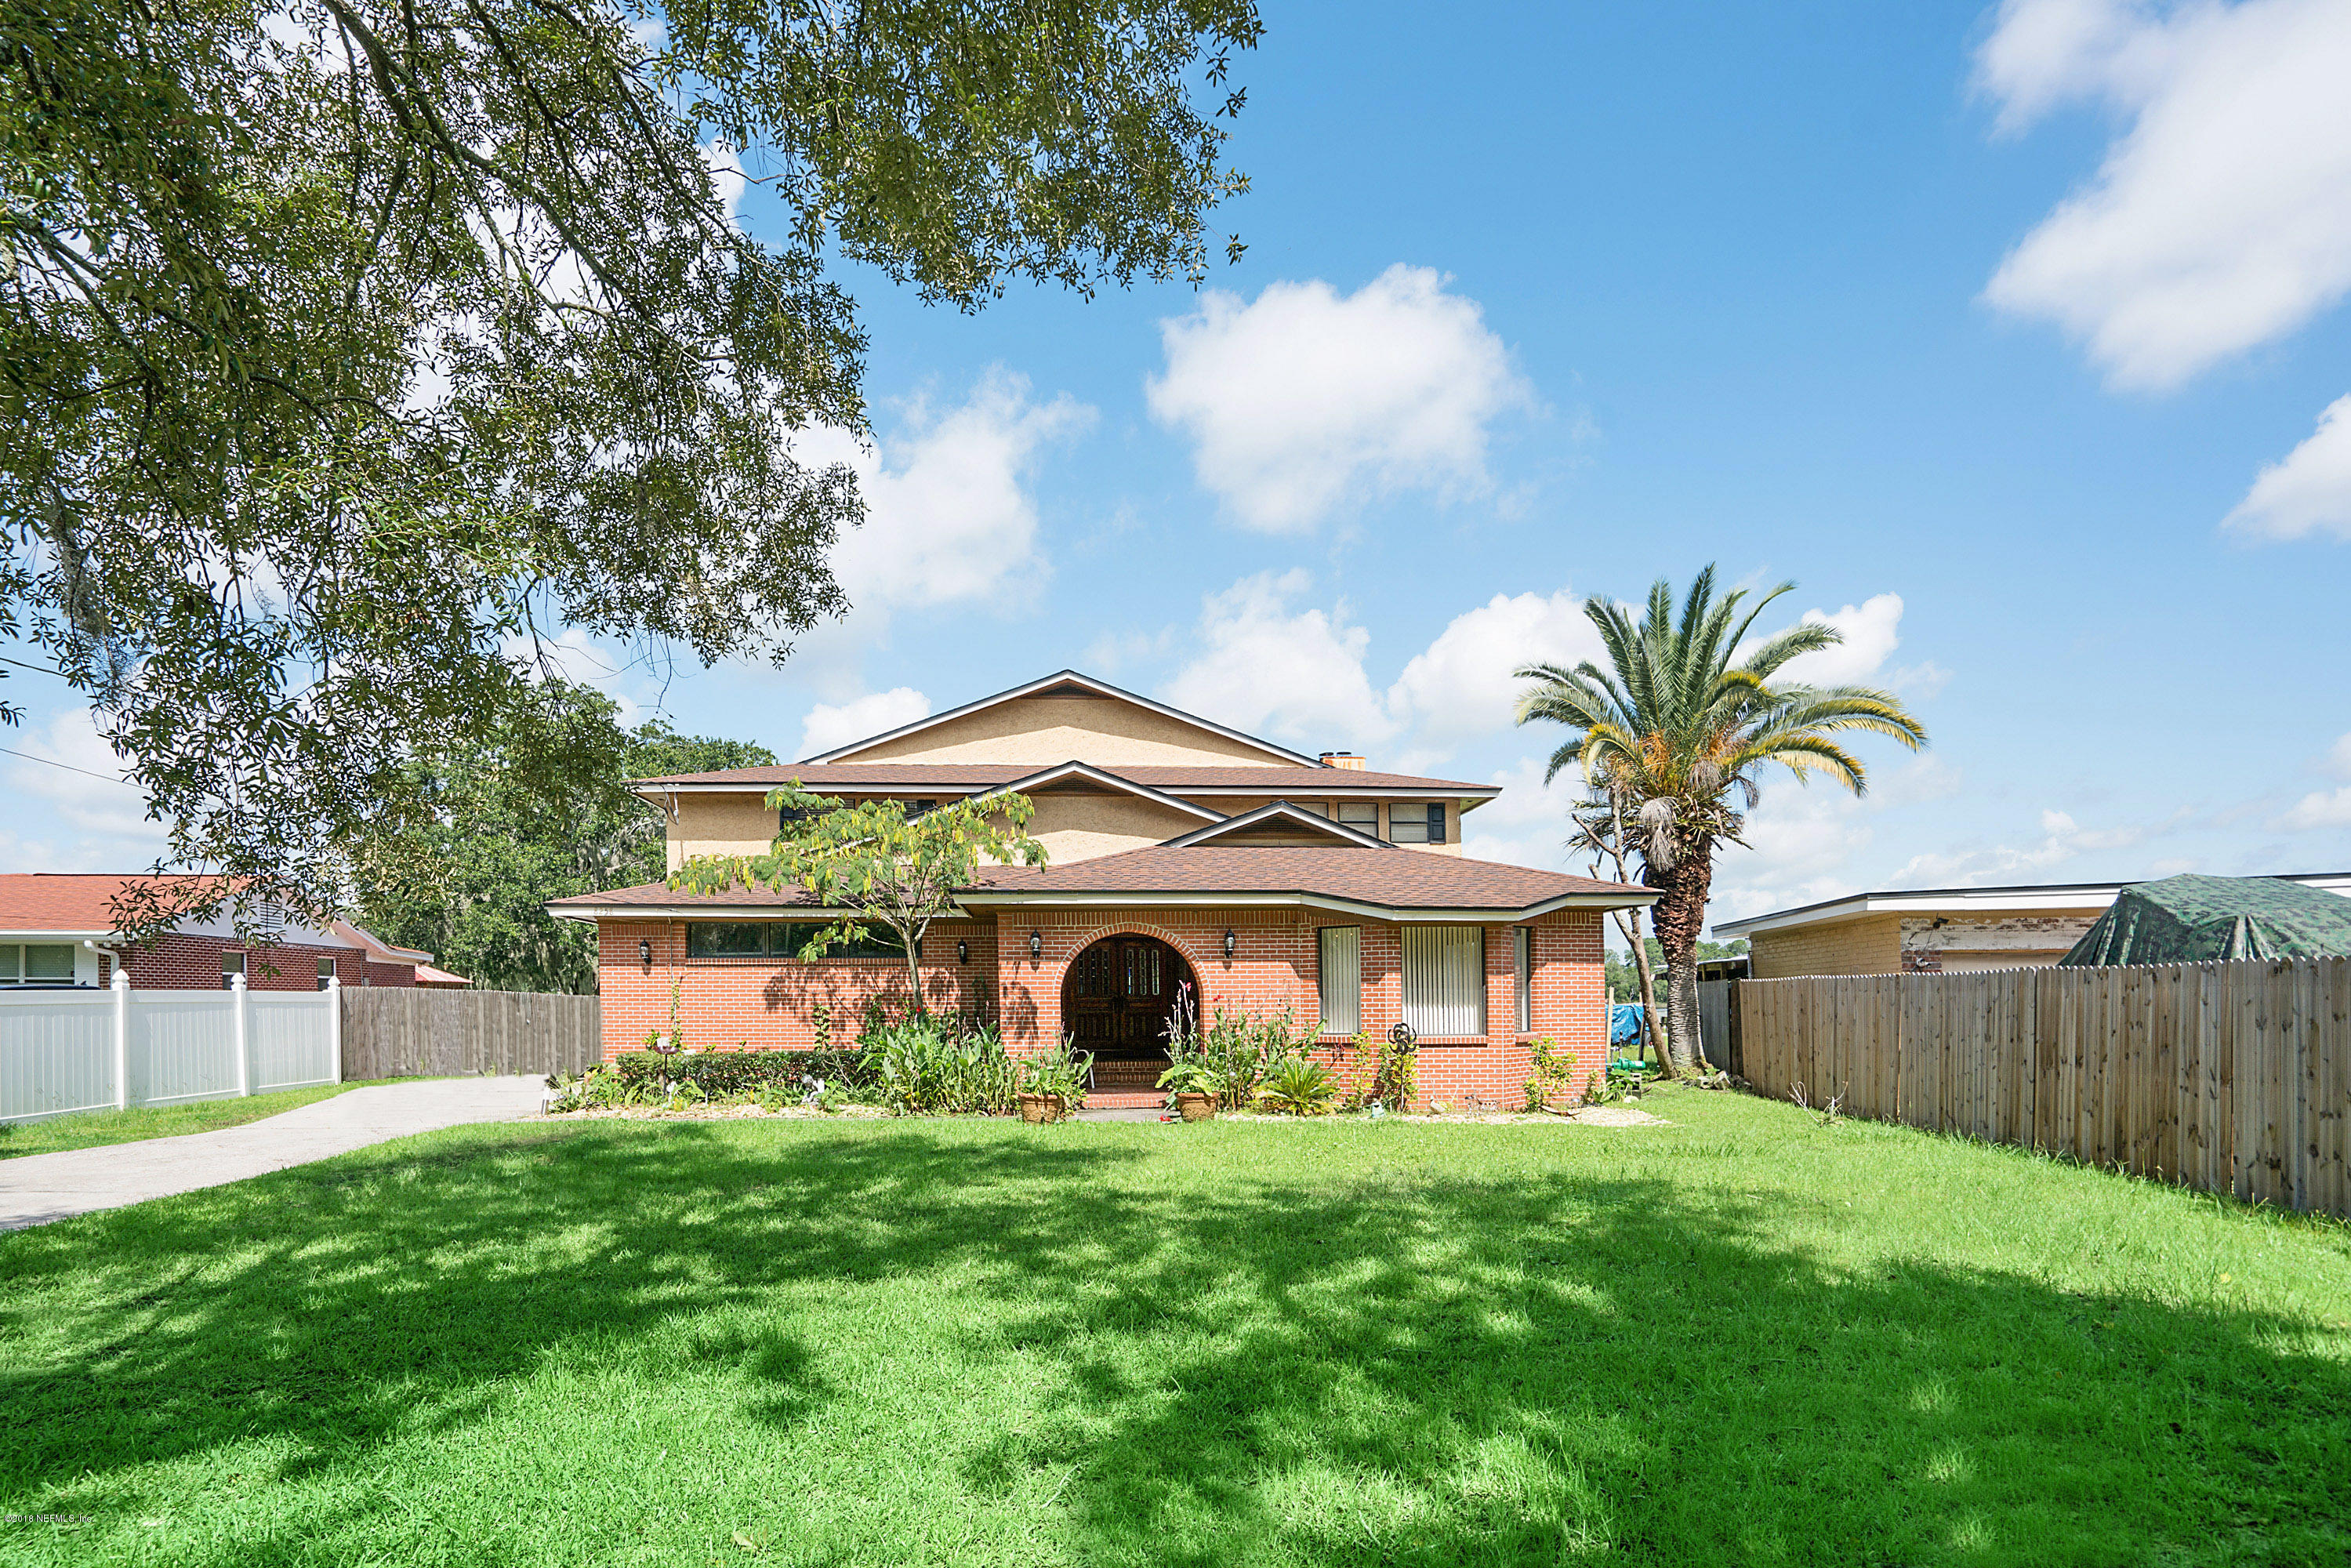 8258 CONCORD, JACKSONVILLE, FLORIDA 32208, 3 Bedrooms Bedrooms, ,2 BathroomsBathrooms,Residential - single family,For sale,CONCORD,951103